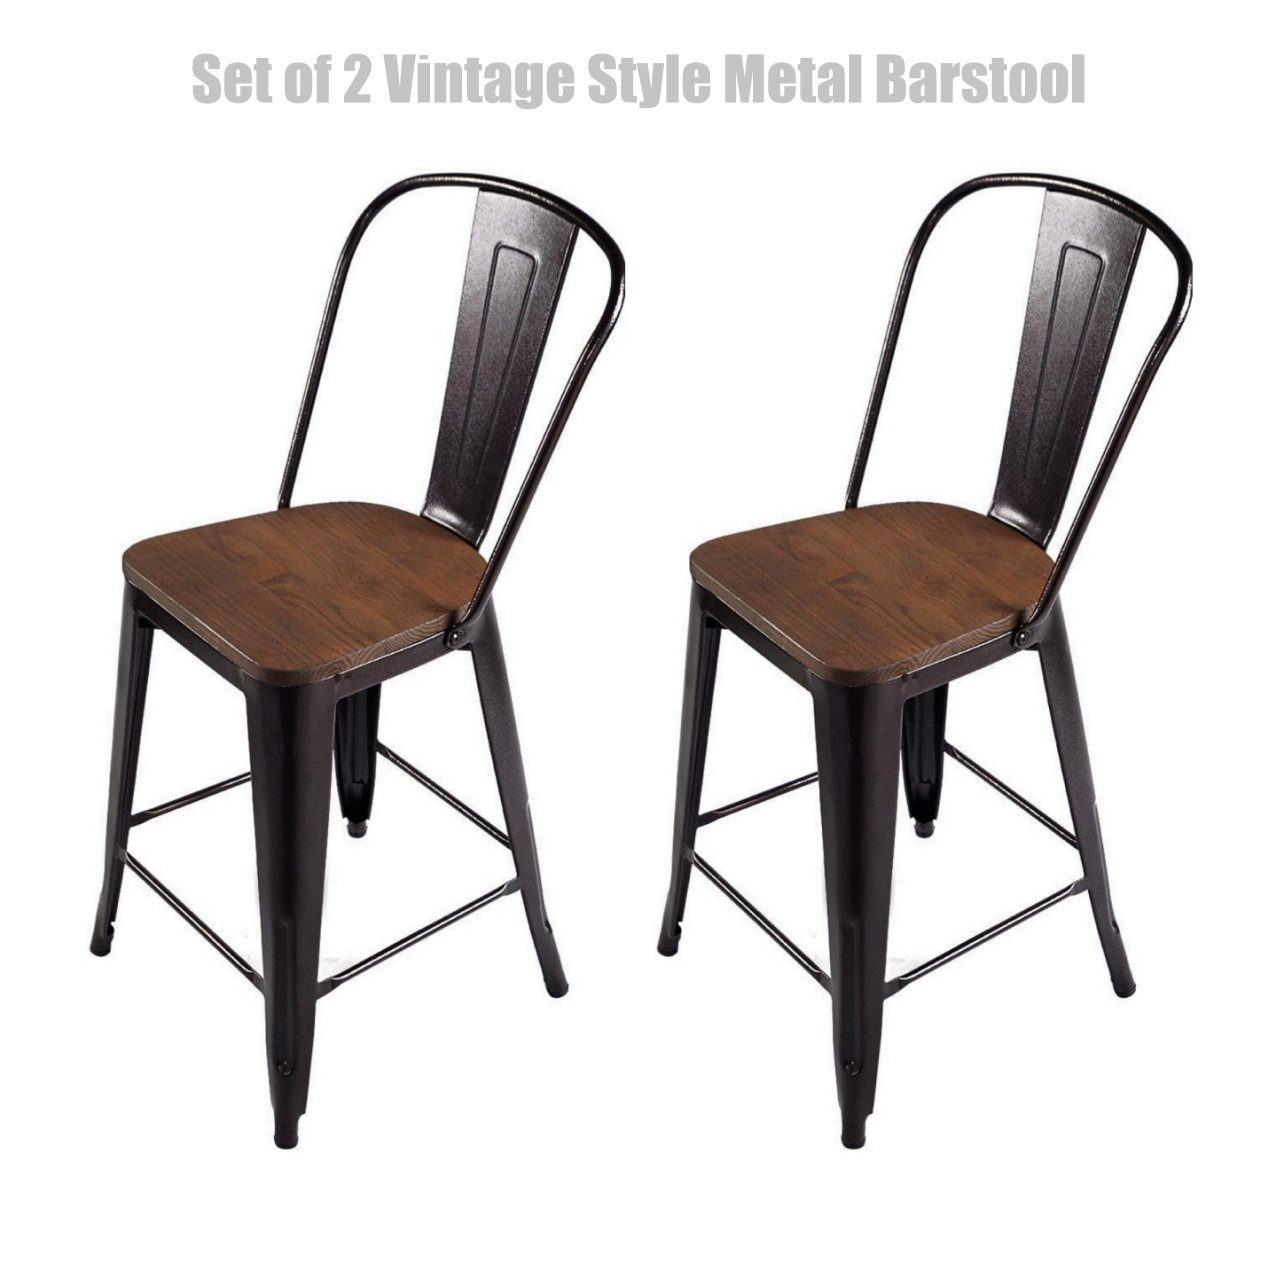 Vintage Style Metal Barstool Solid Steel Construction Comfortable Backrest Scratch Resistant Side Chair Home Office Furniture - Set of 2 Copper 24''H #1433